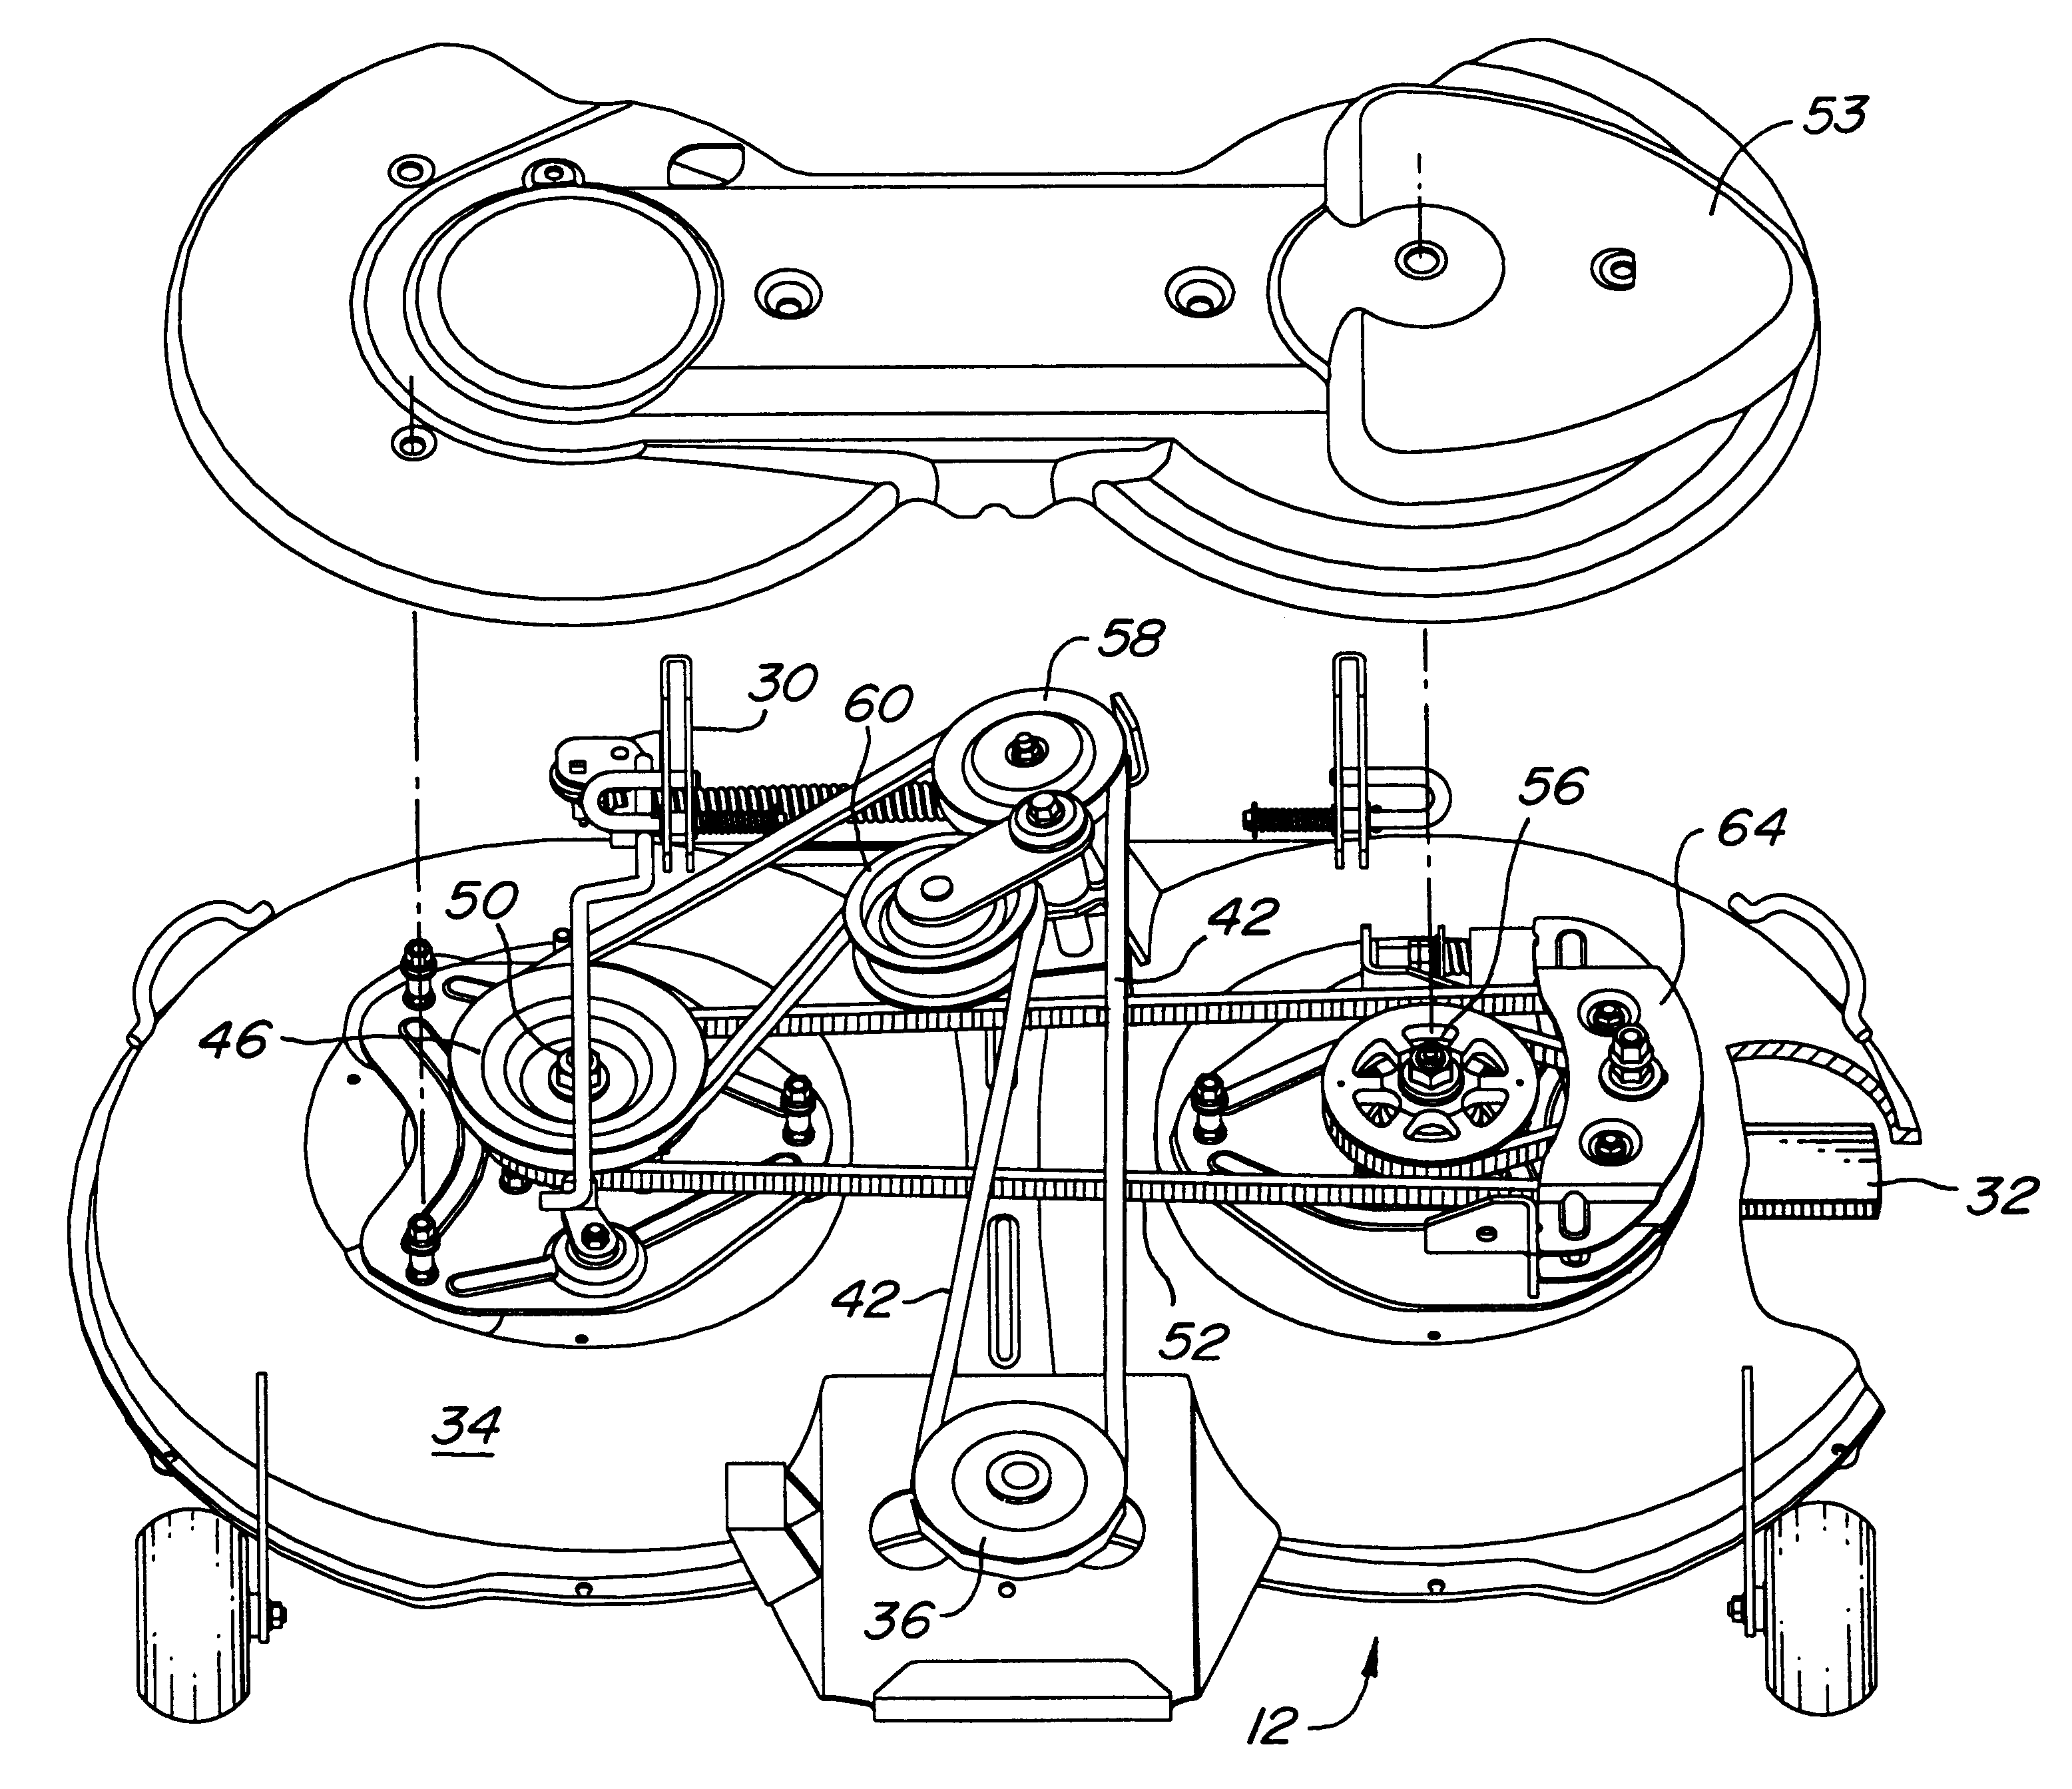 john deere lt166 belt diagram